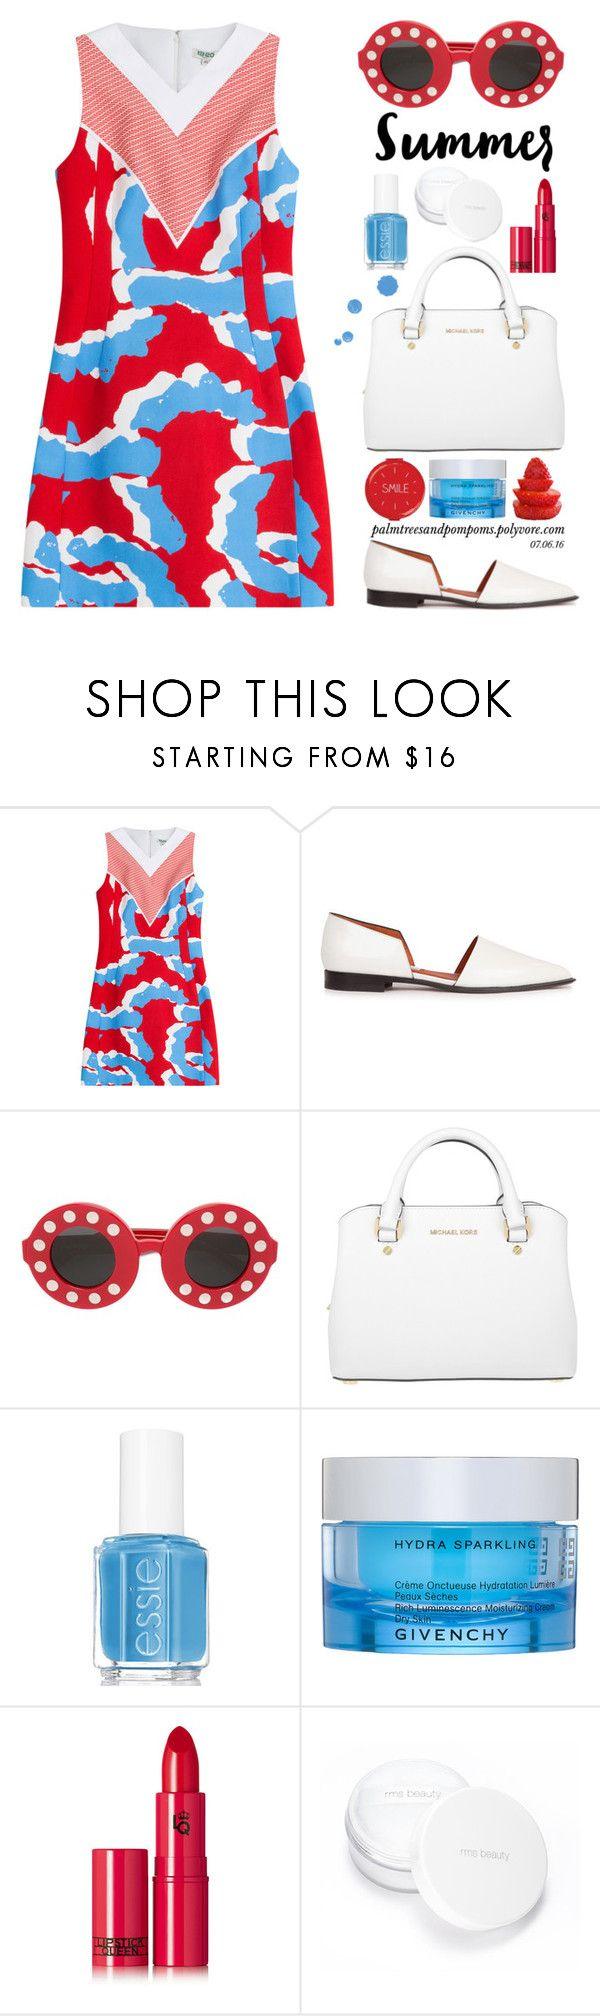 """""""07.06.16"""" by palmtreesandpompoms ❤ liked on Polyvore featuring Kenzo, Acne Studios, Linda Farrow, Michael Kors, Essie, Givenchy, Lipstick Queen, rms beauty and Wild & Wolf"""